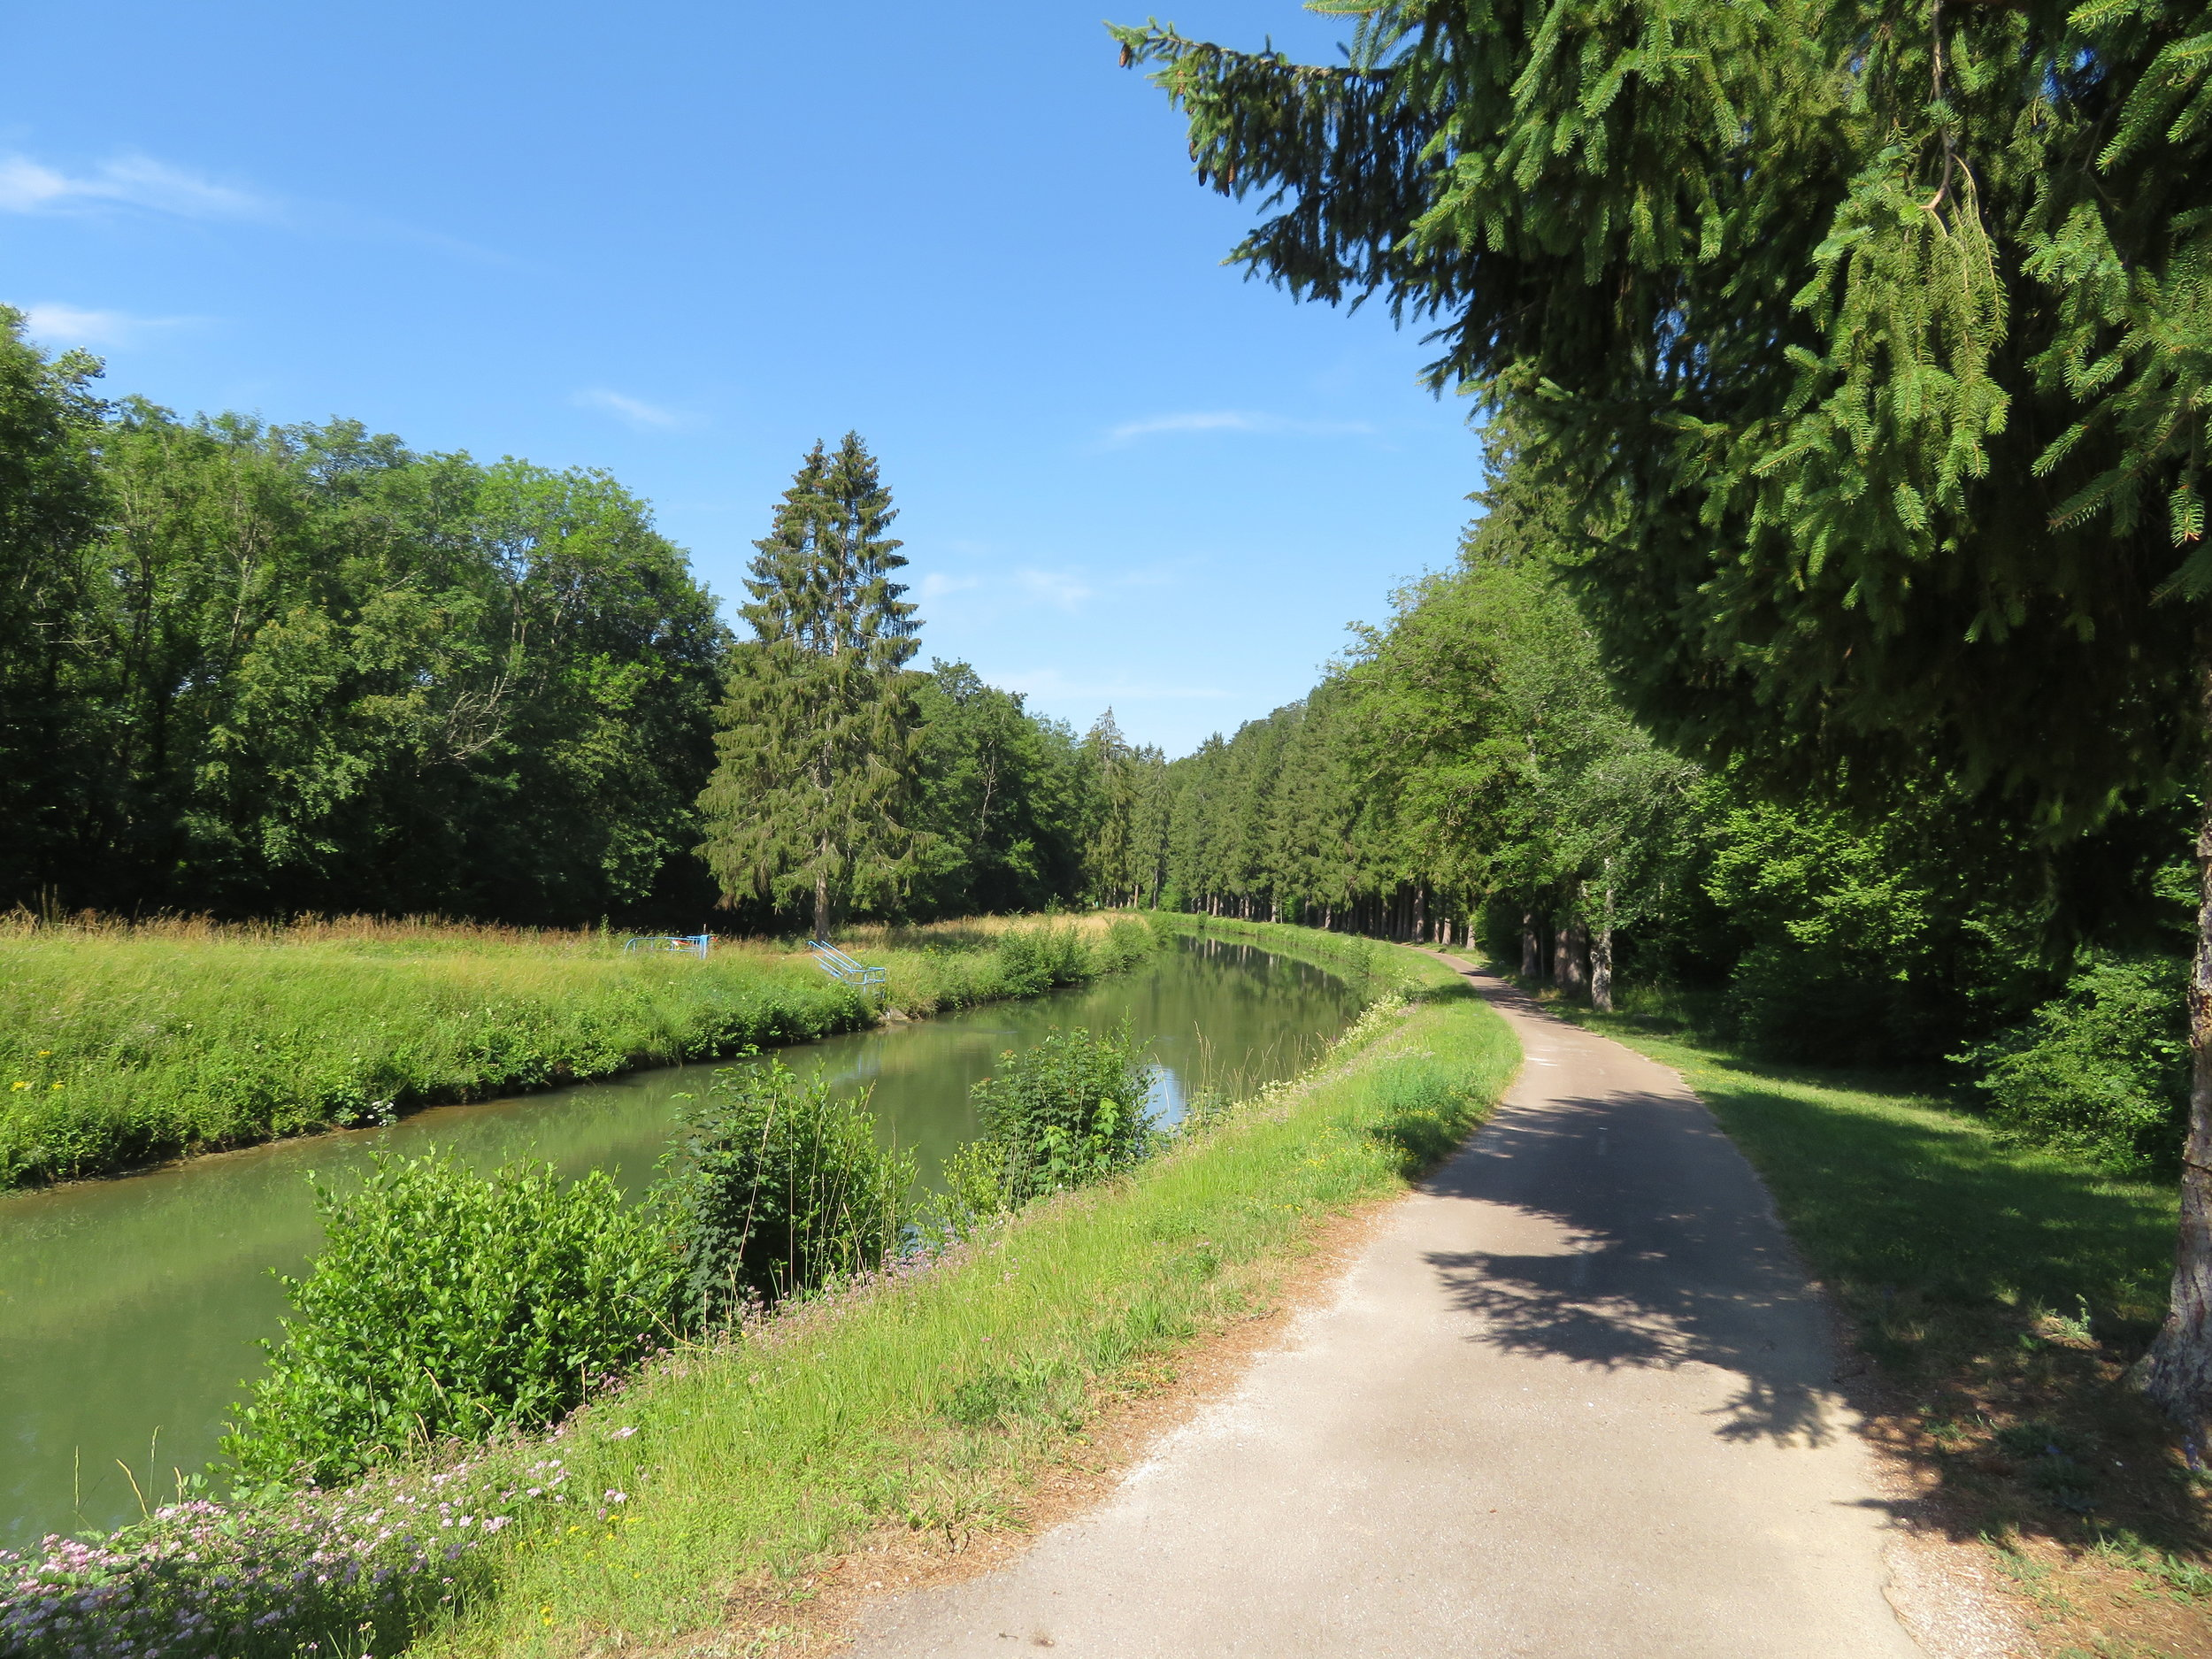 Champagne-Bourgogne Canal